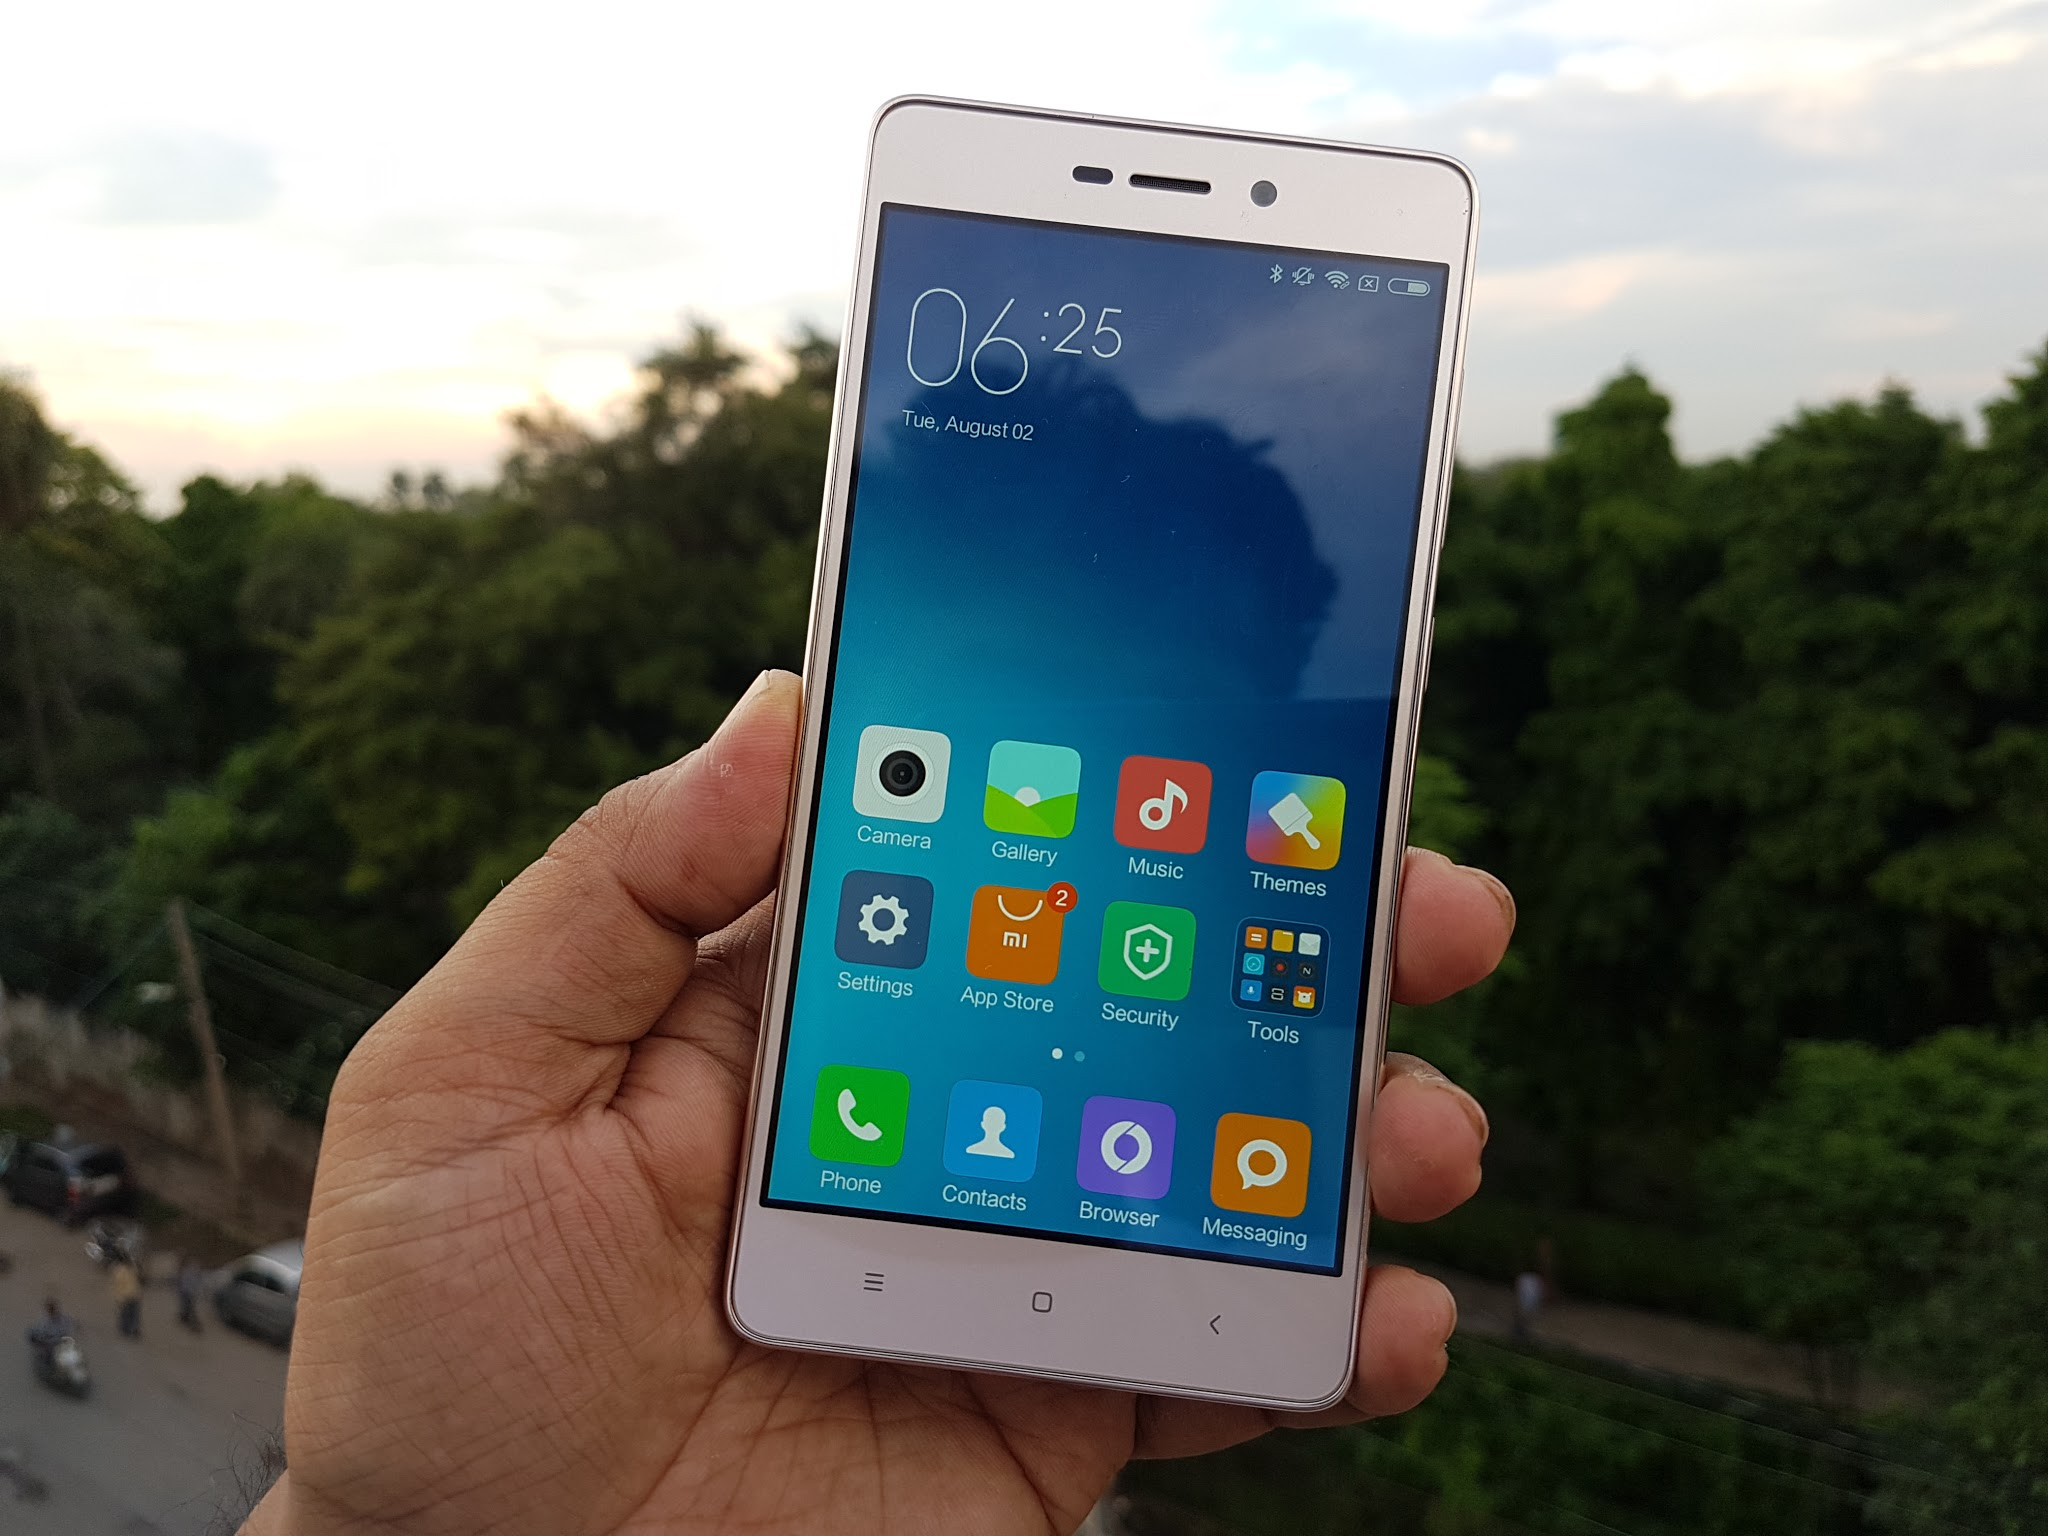 Xiaomi Redmi 4a Vs Xiaomi Redmi 3s Quick Comparison Review